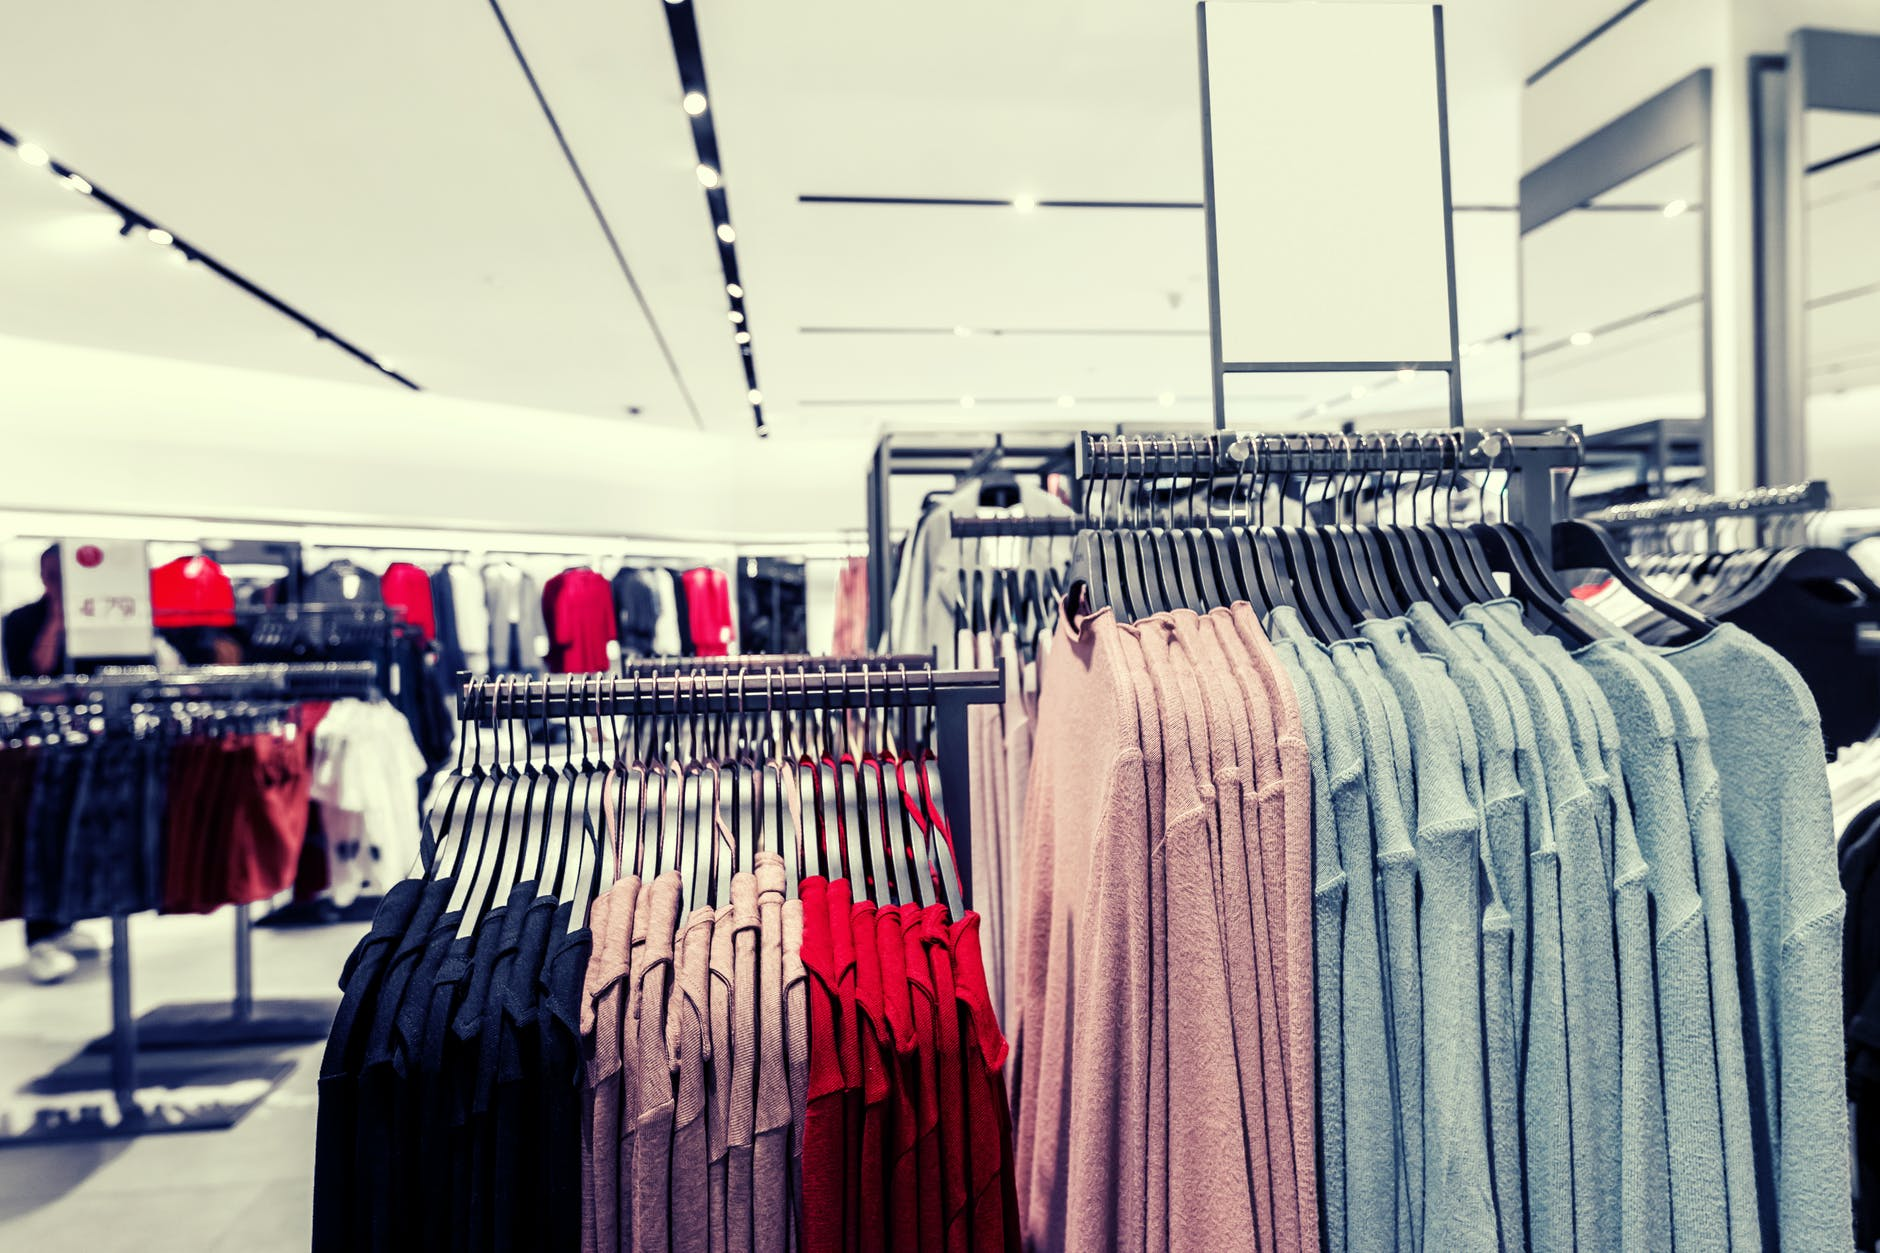 An image of clothes in a store | Photo: Pixabay